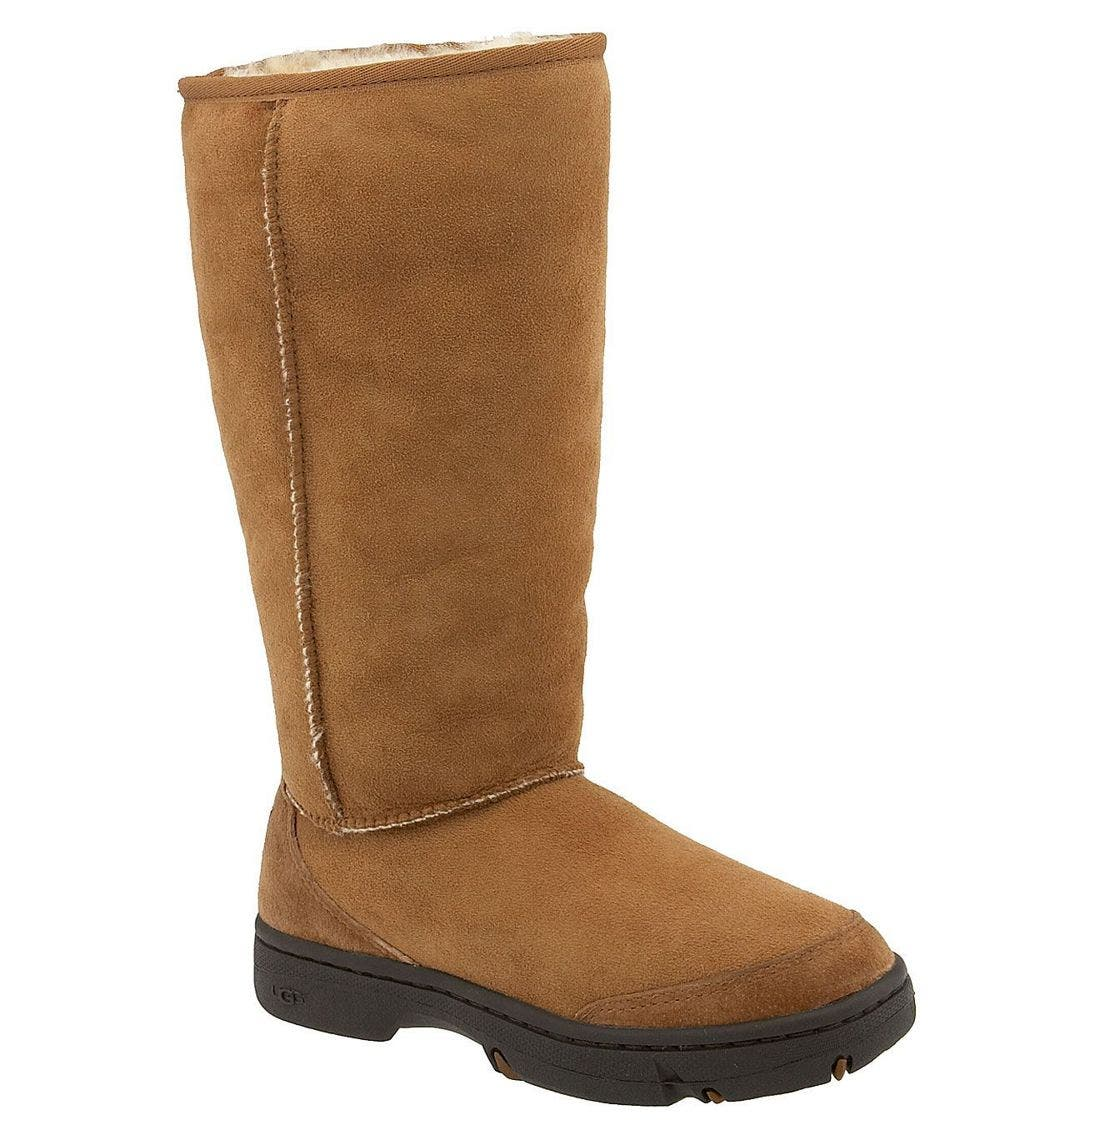 Alternate Image 1 Selected - UGG® Australia 'Ultimate Tall Braid' Boot (Women)